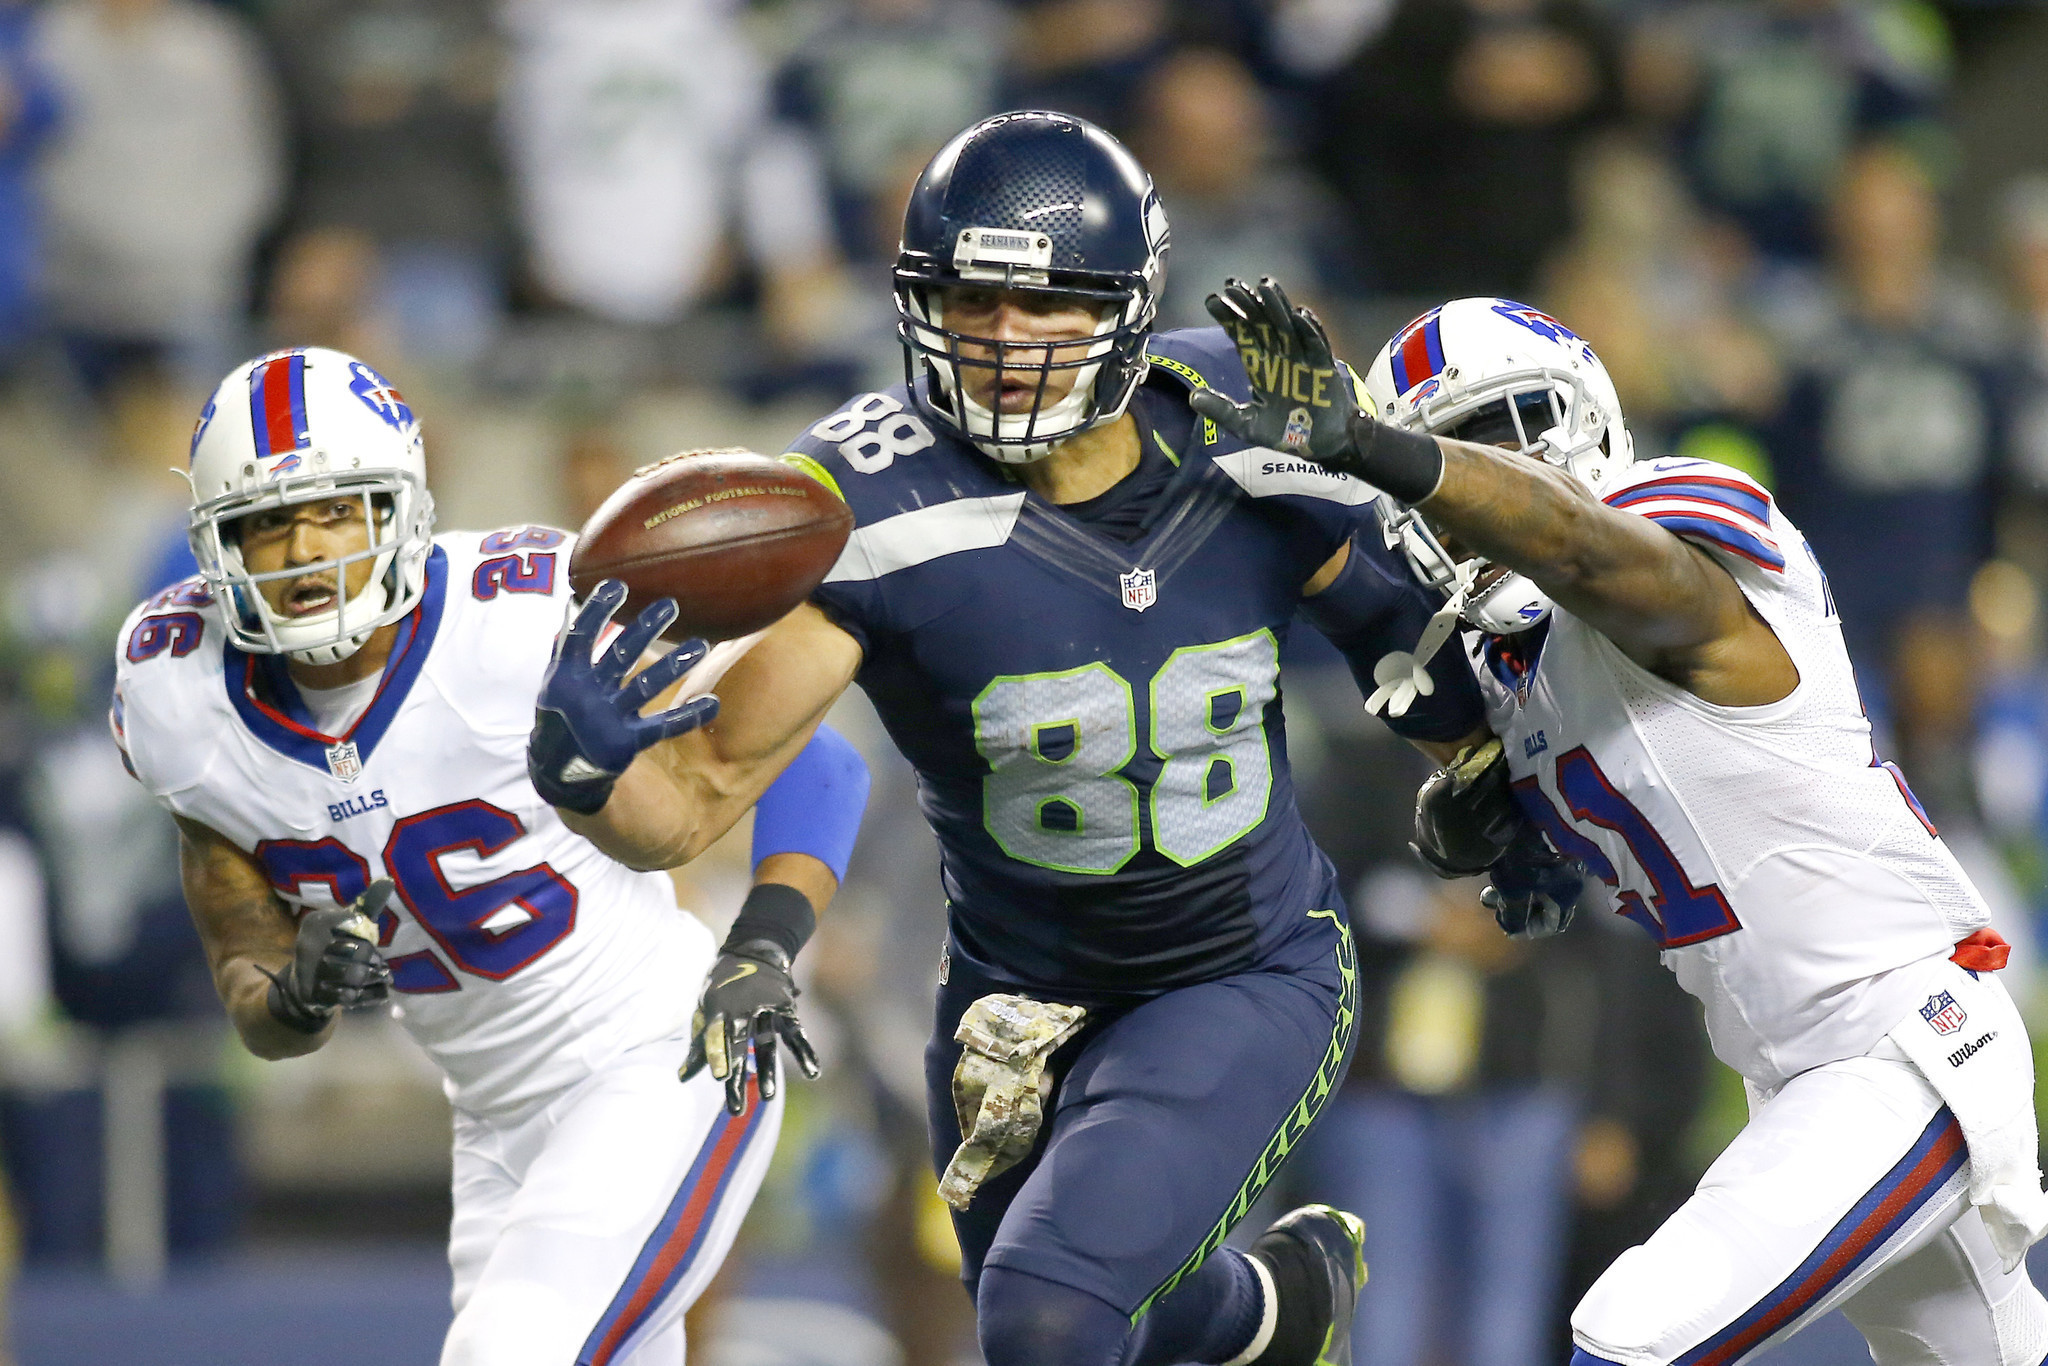 Pair of Jimmy Graham one handed TD catches helps Seahawks to win